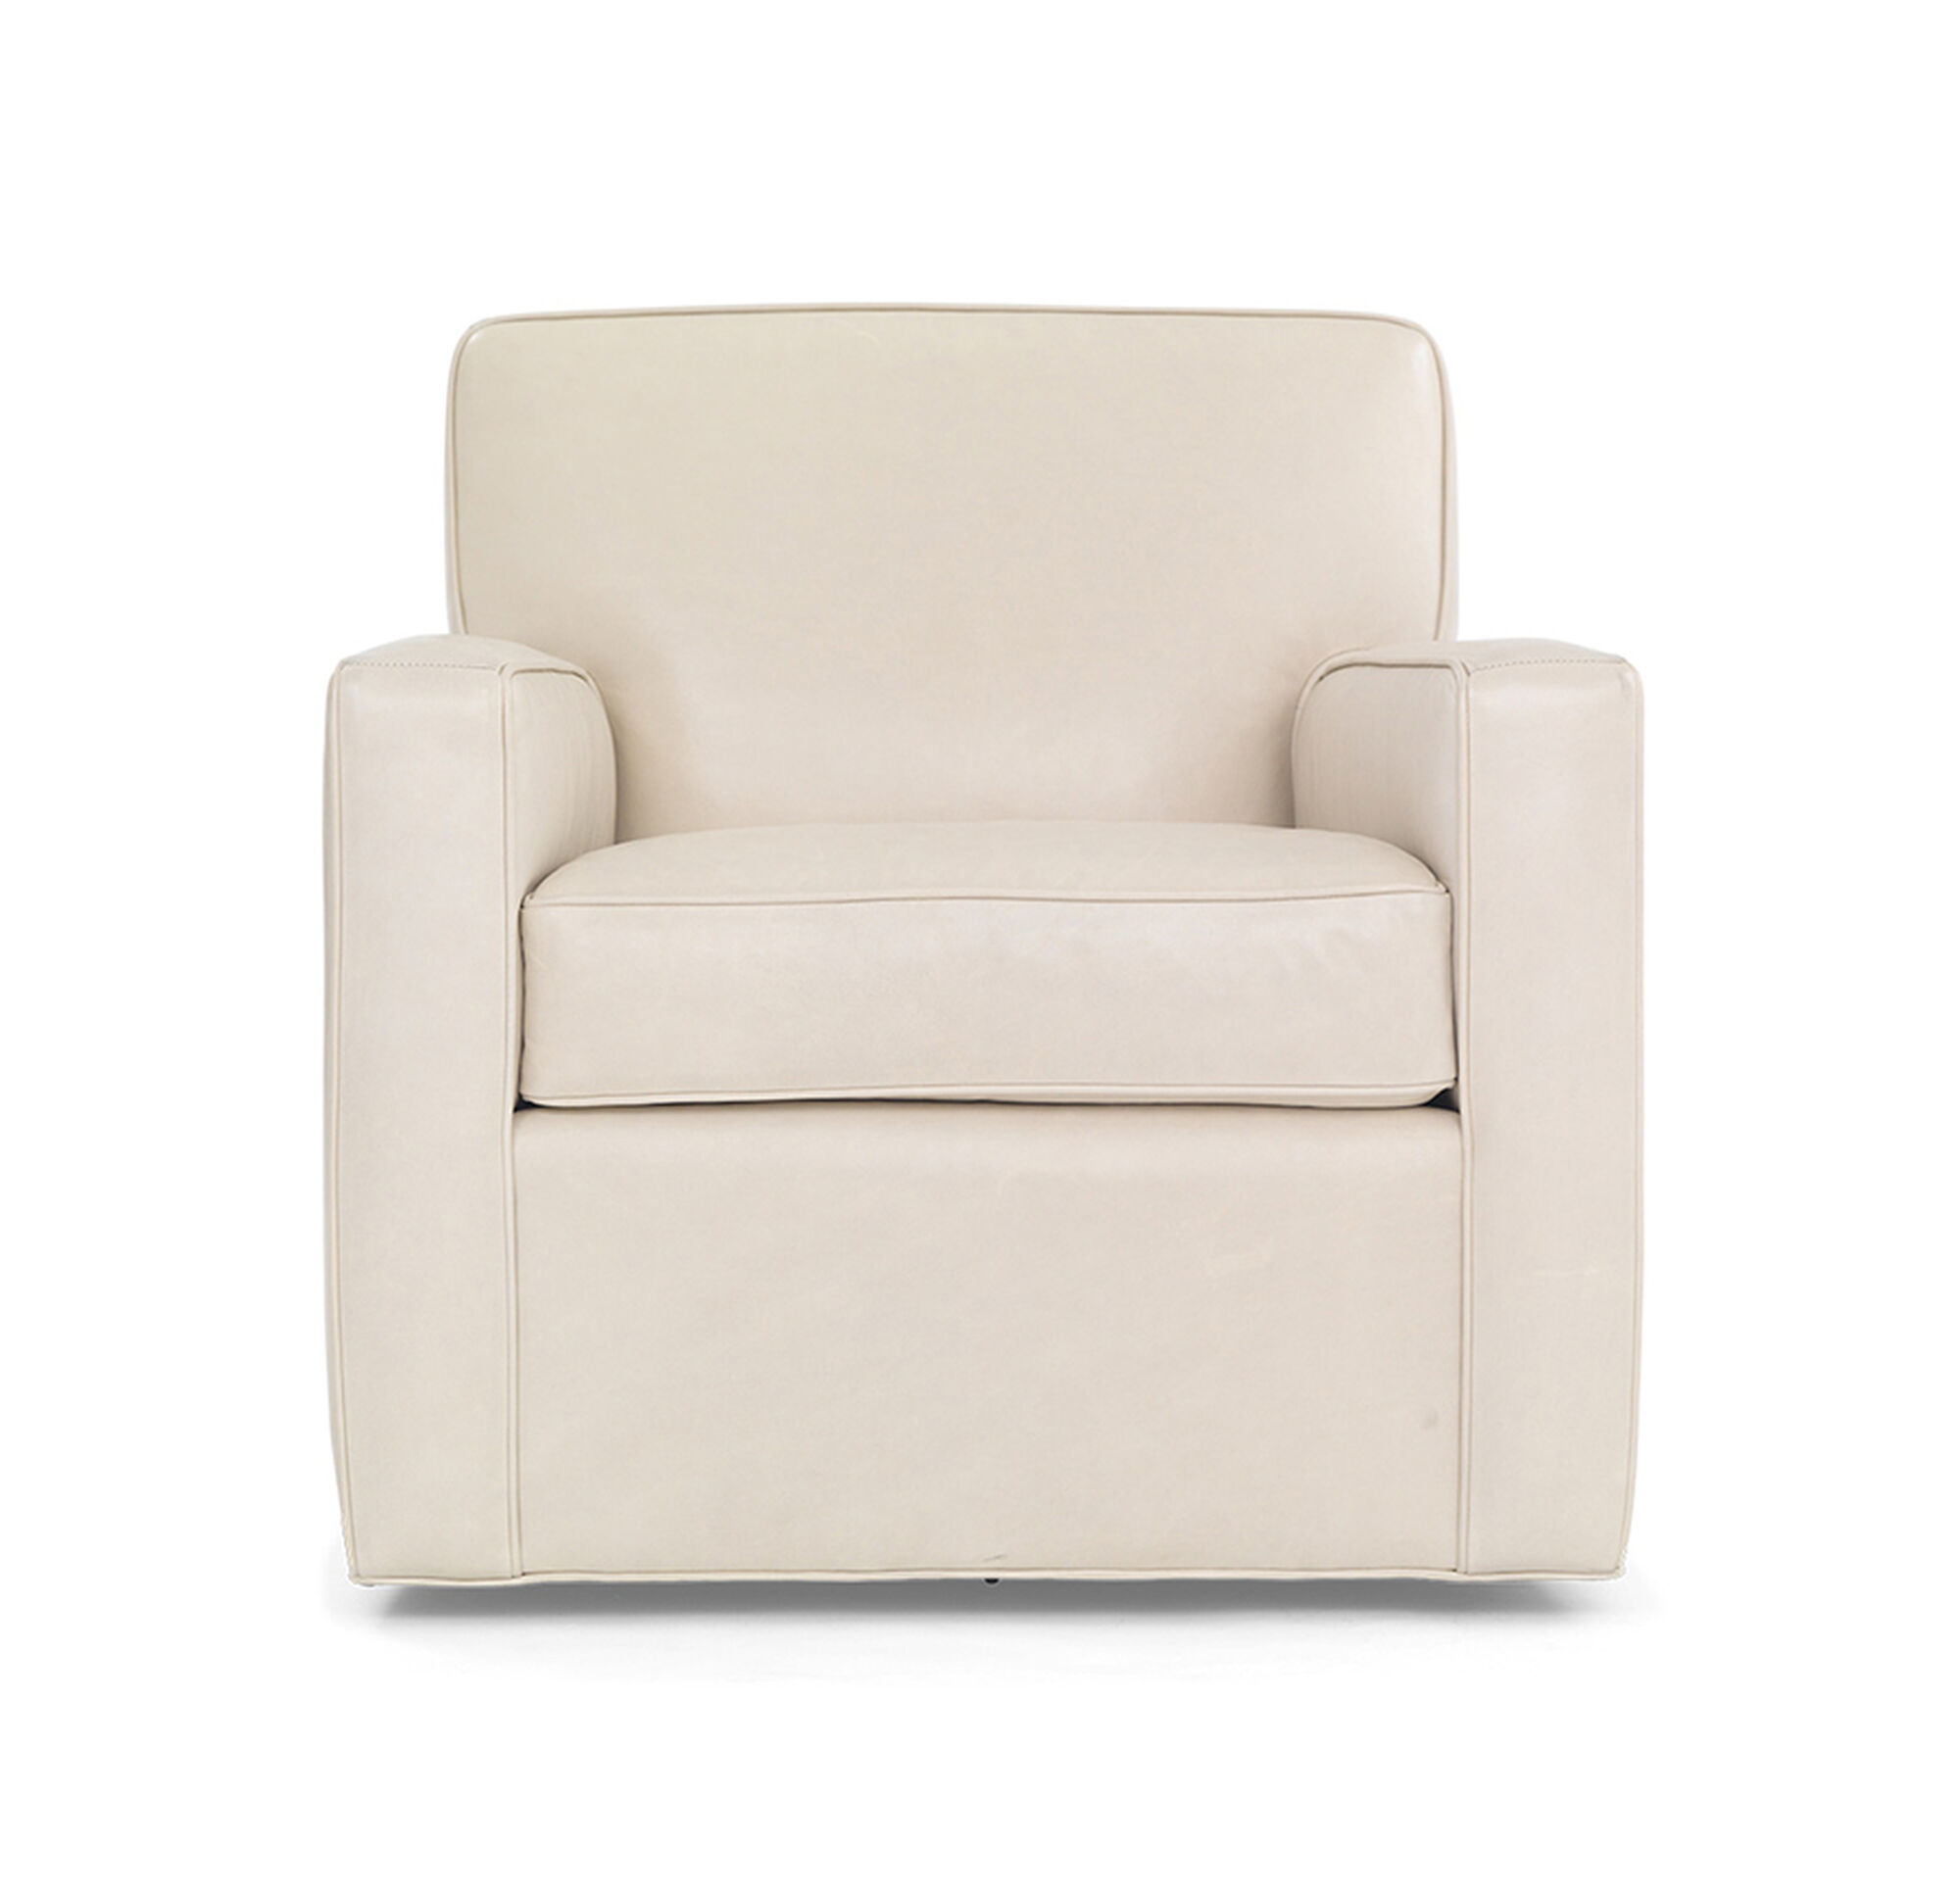 FELIX LEATHER SWIVEL CHAIR